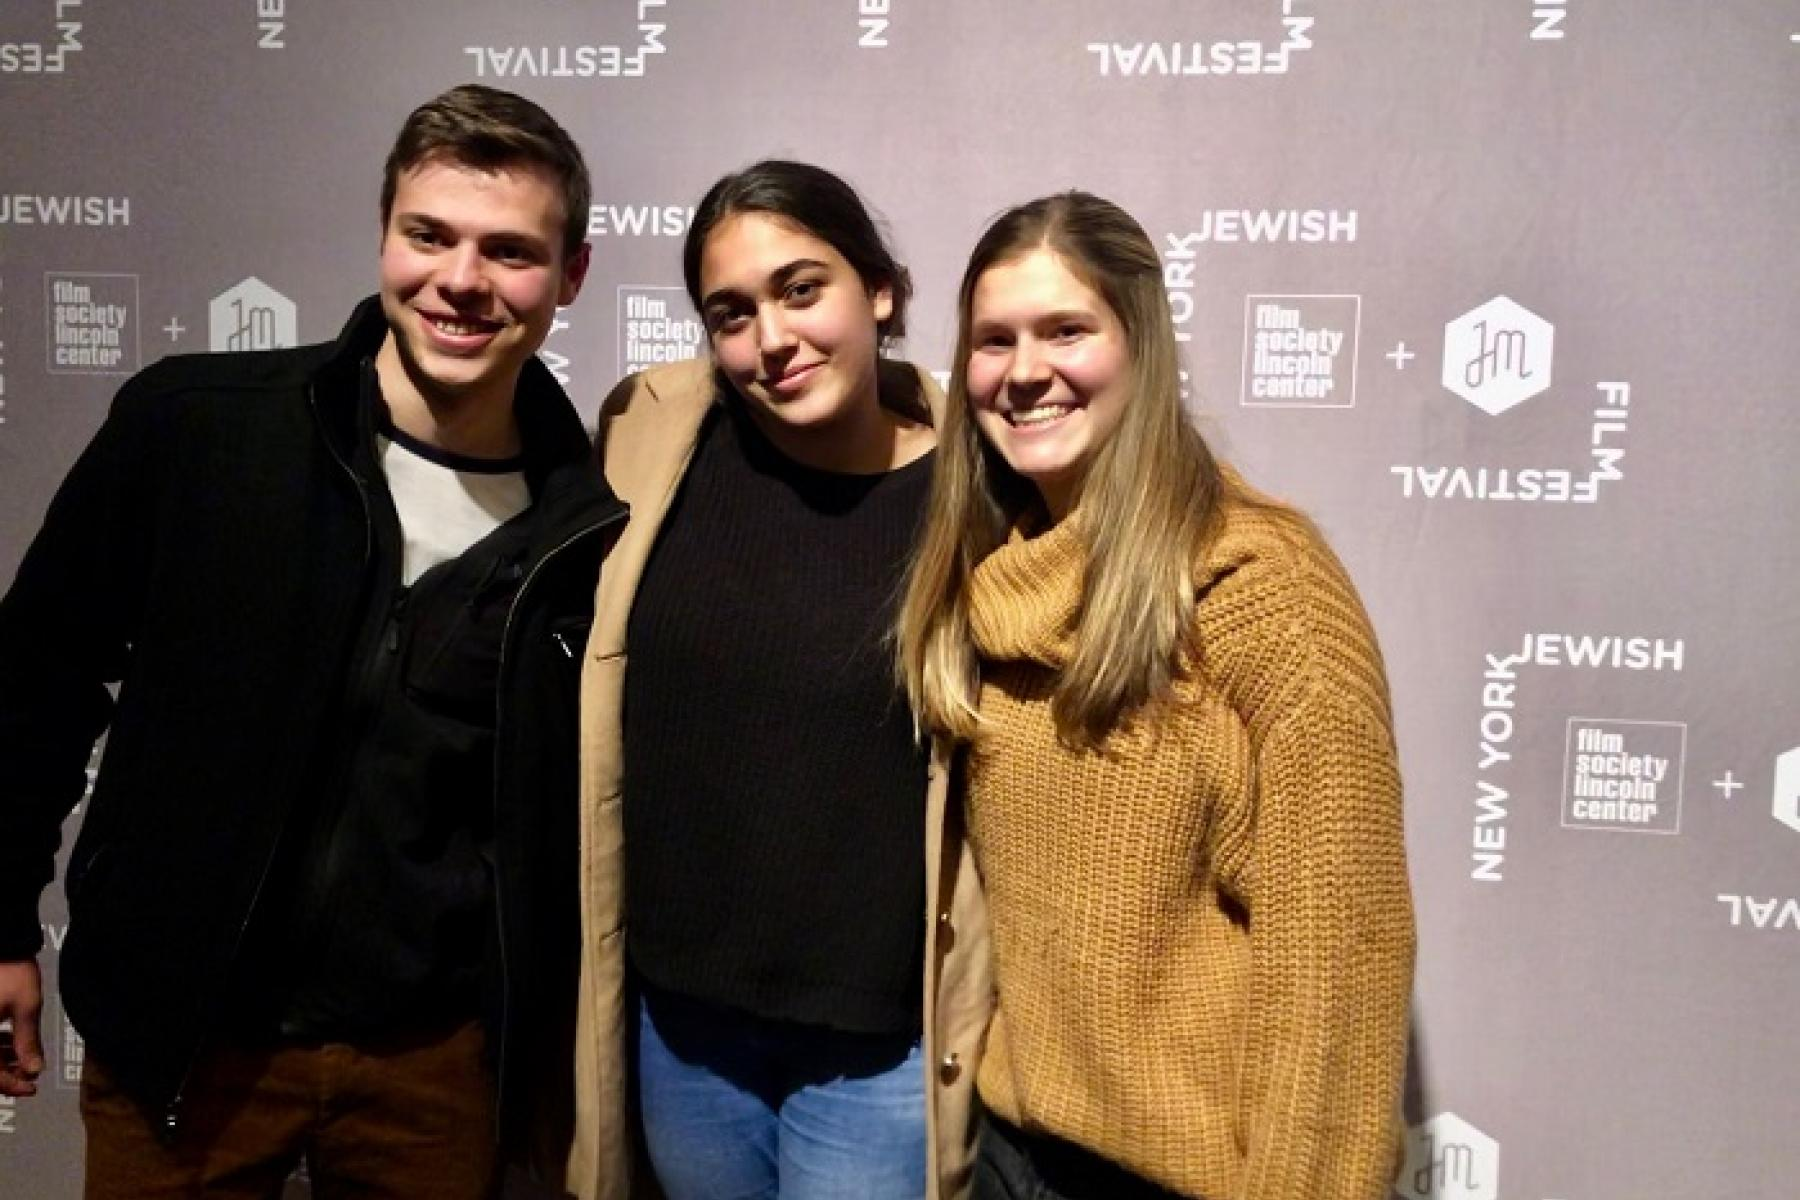 Students at the film festival